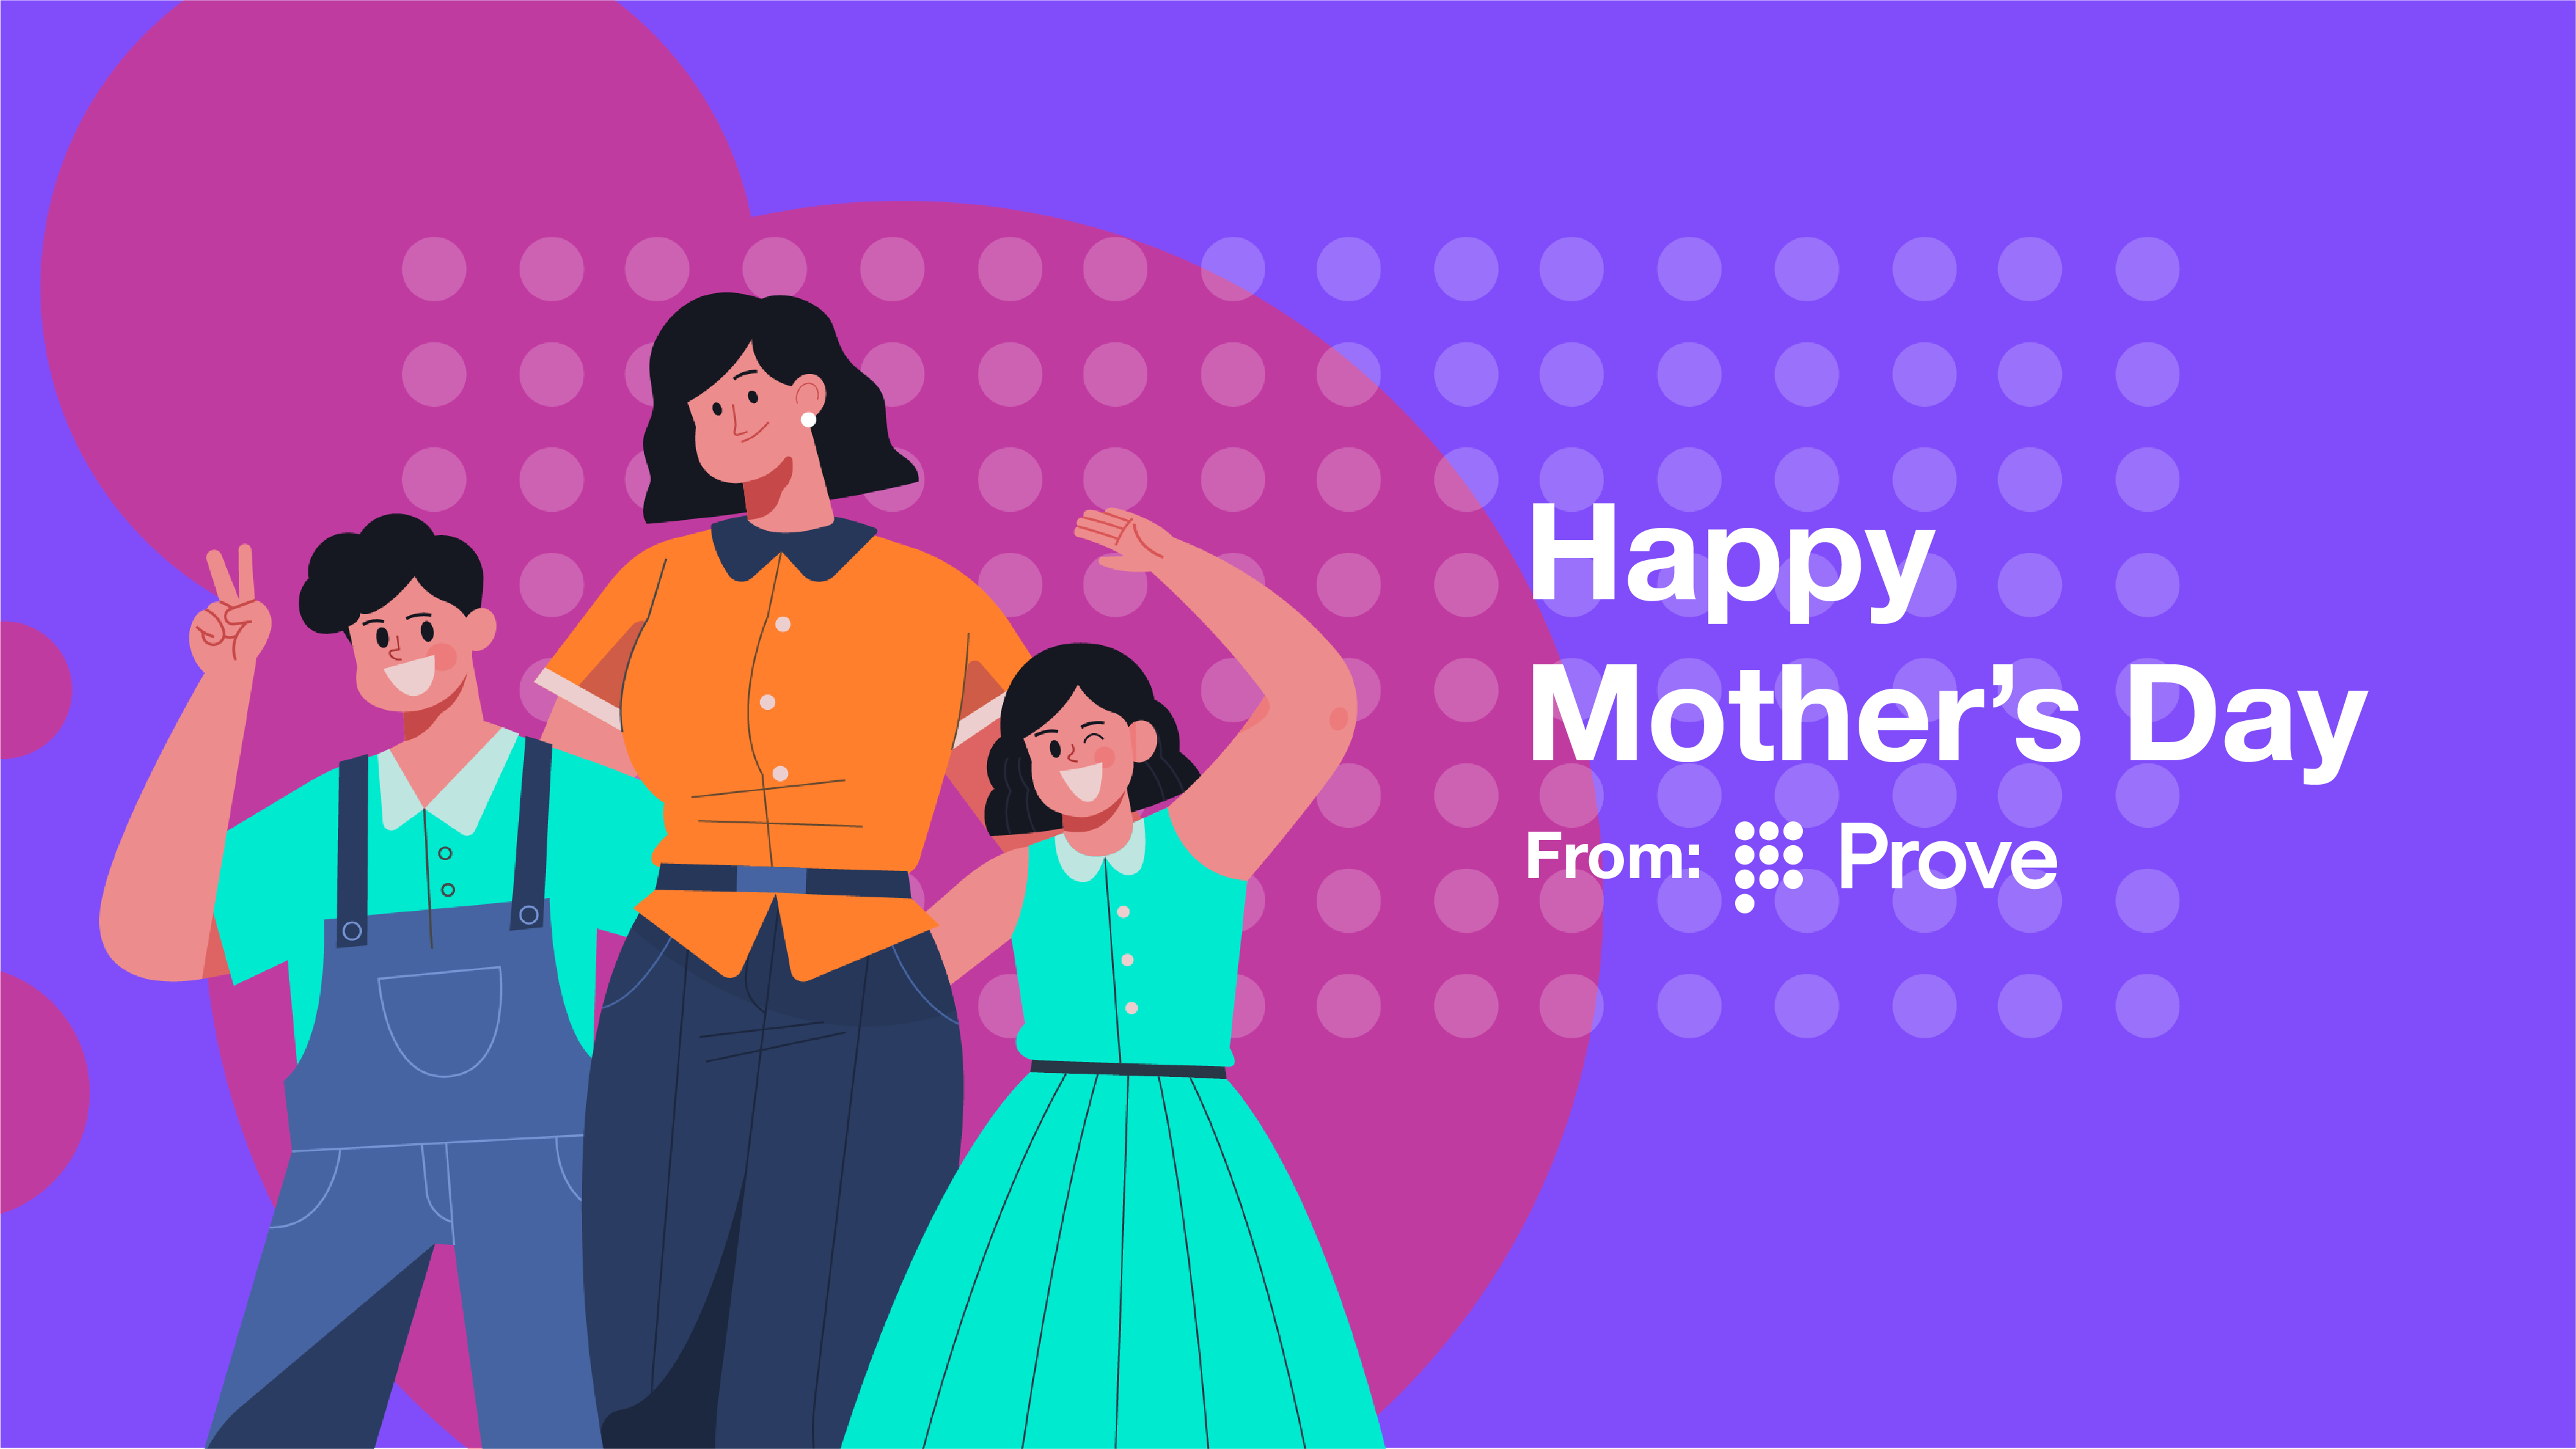 Happy Mother's Day! Are You Creating a Supportive Culture for Moms?